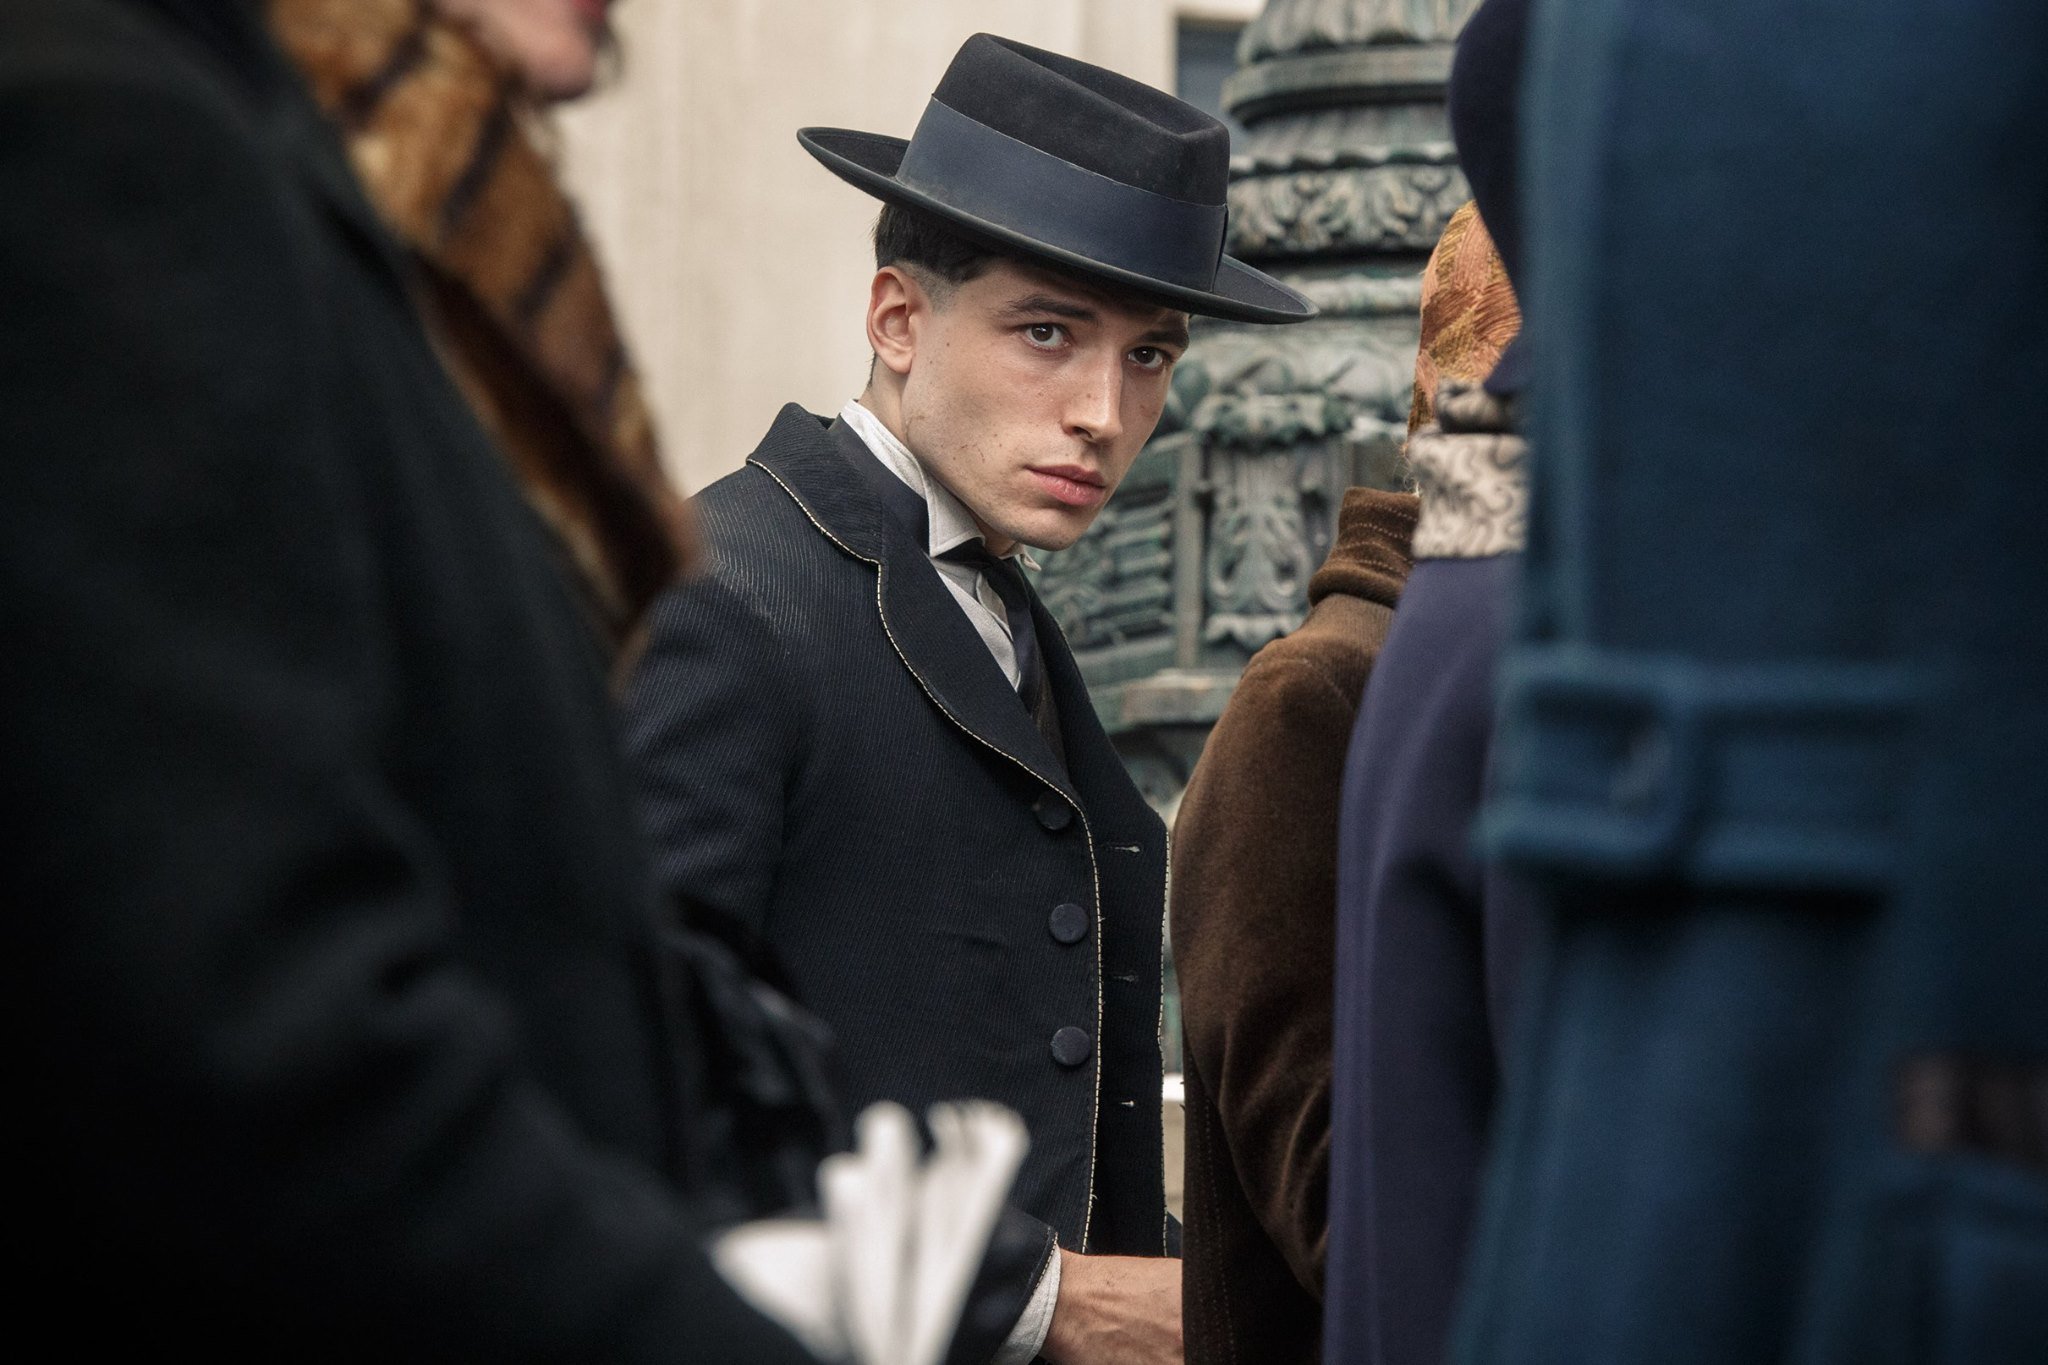 ezra-miller-as-credence-barebone-in-fantastic-beasts-and-where-to-find-them.jpeg